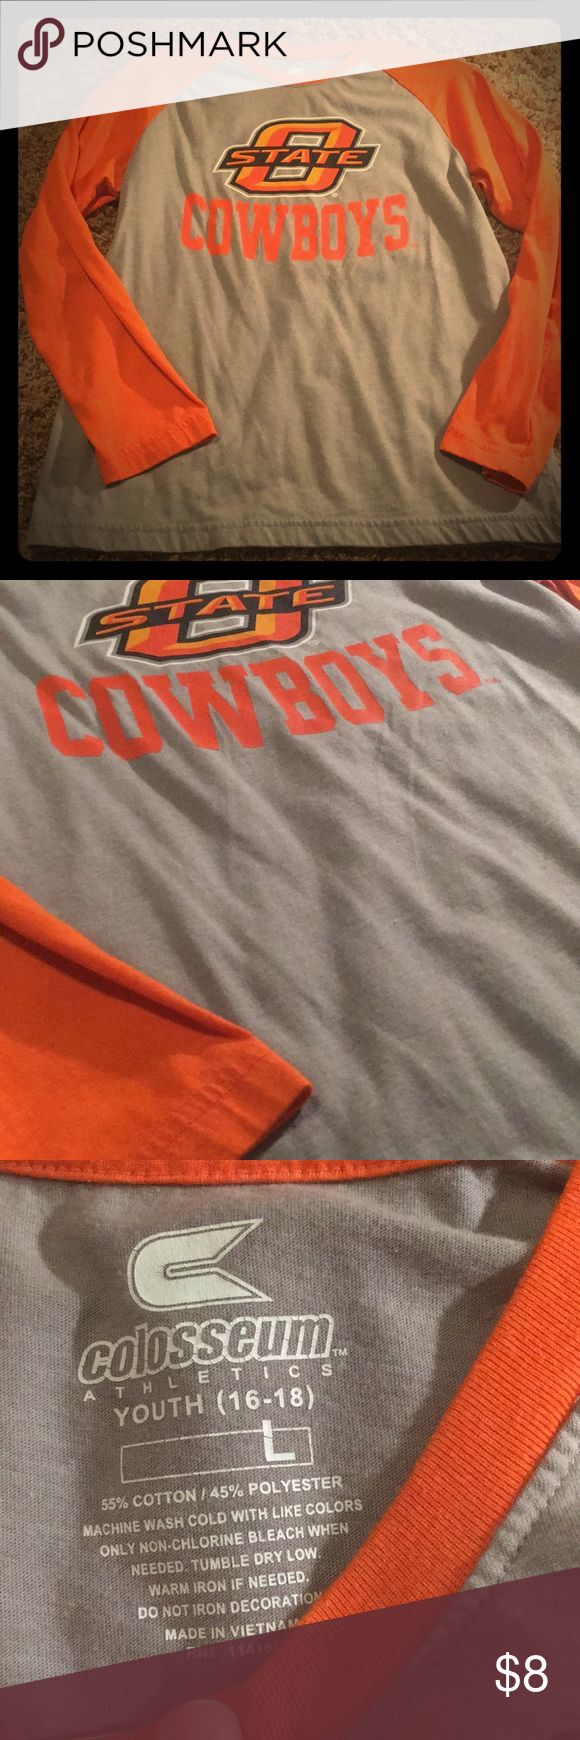 OSU Baseball Tee Oklahoma State Cowboys baseball T-shirt. Size youth large (16-18). Like new, only worn a few times. Orange sleeve with gray body. 3/4 sleeves. Colosseum Shirts & Tops Tees - Long Sleeve